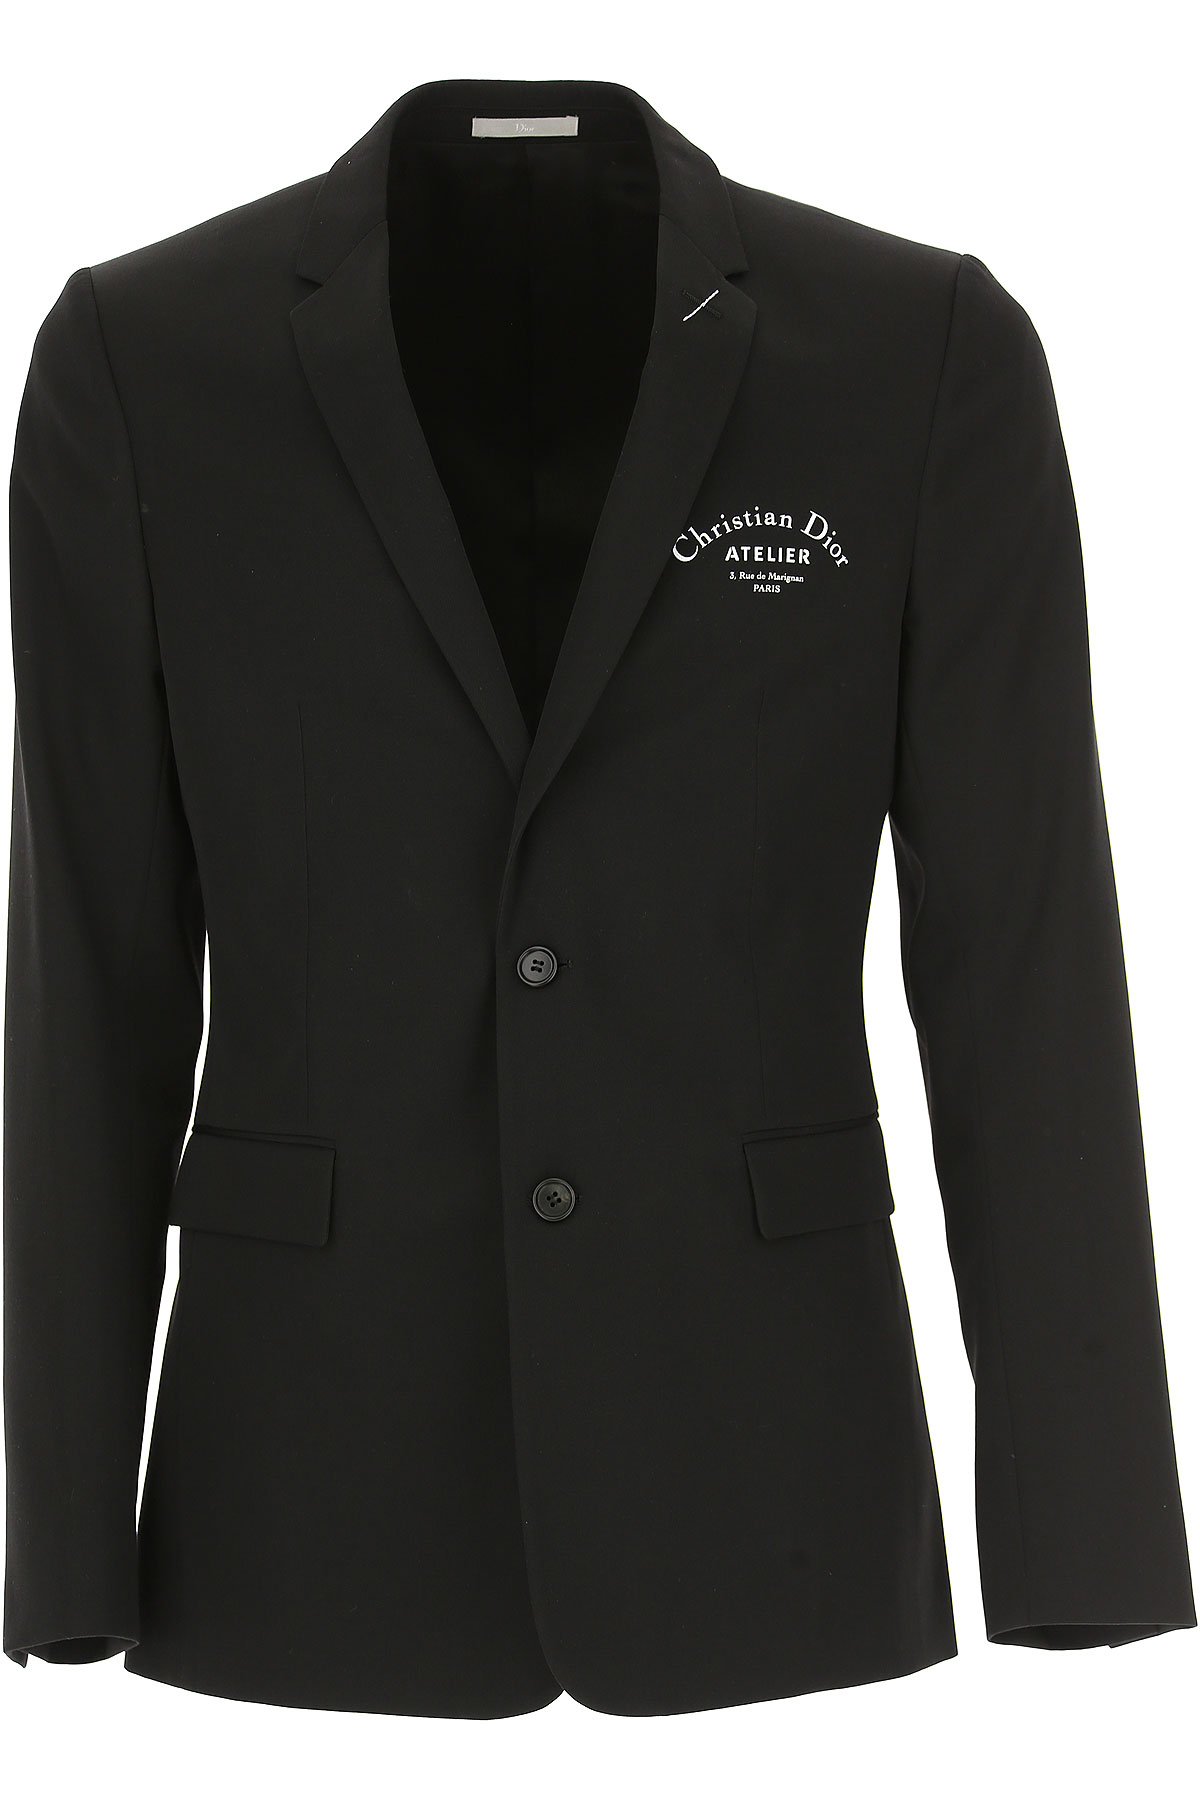 Image of Christian Dior Blazer for Men, Sport Coat, Black, Virgin wool, 2017, L M